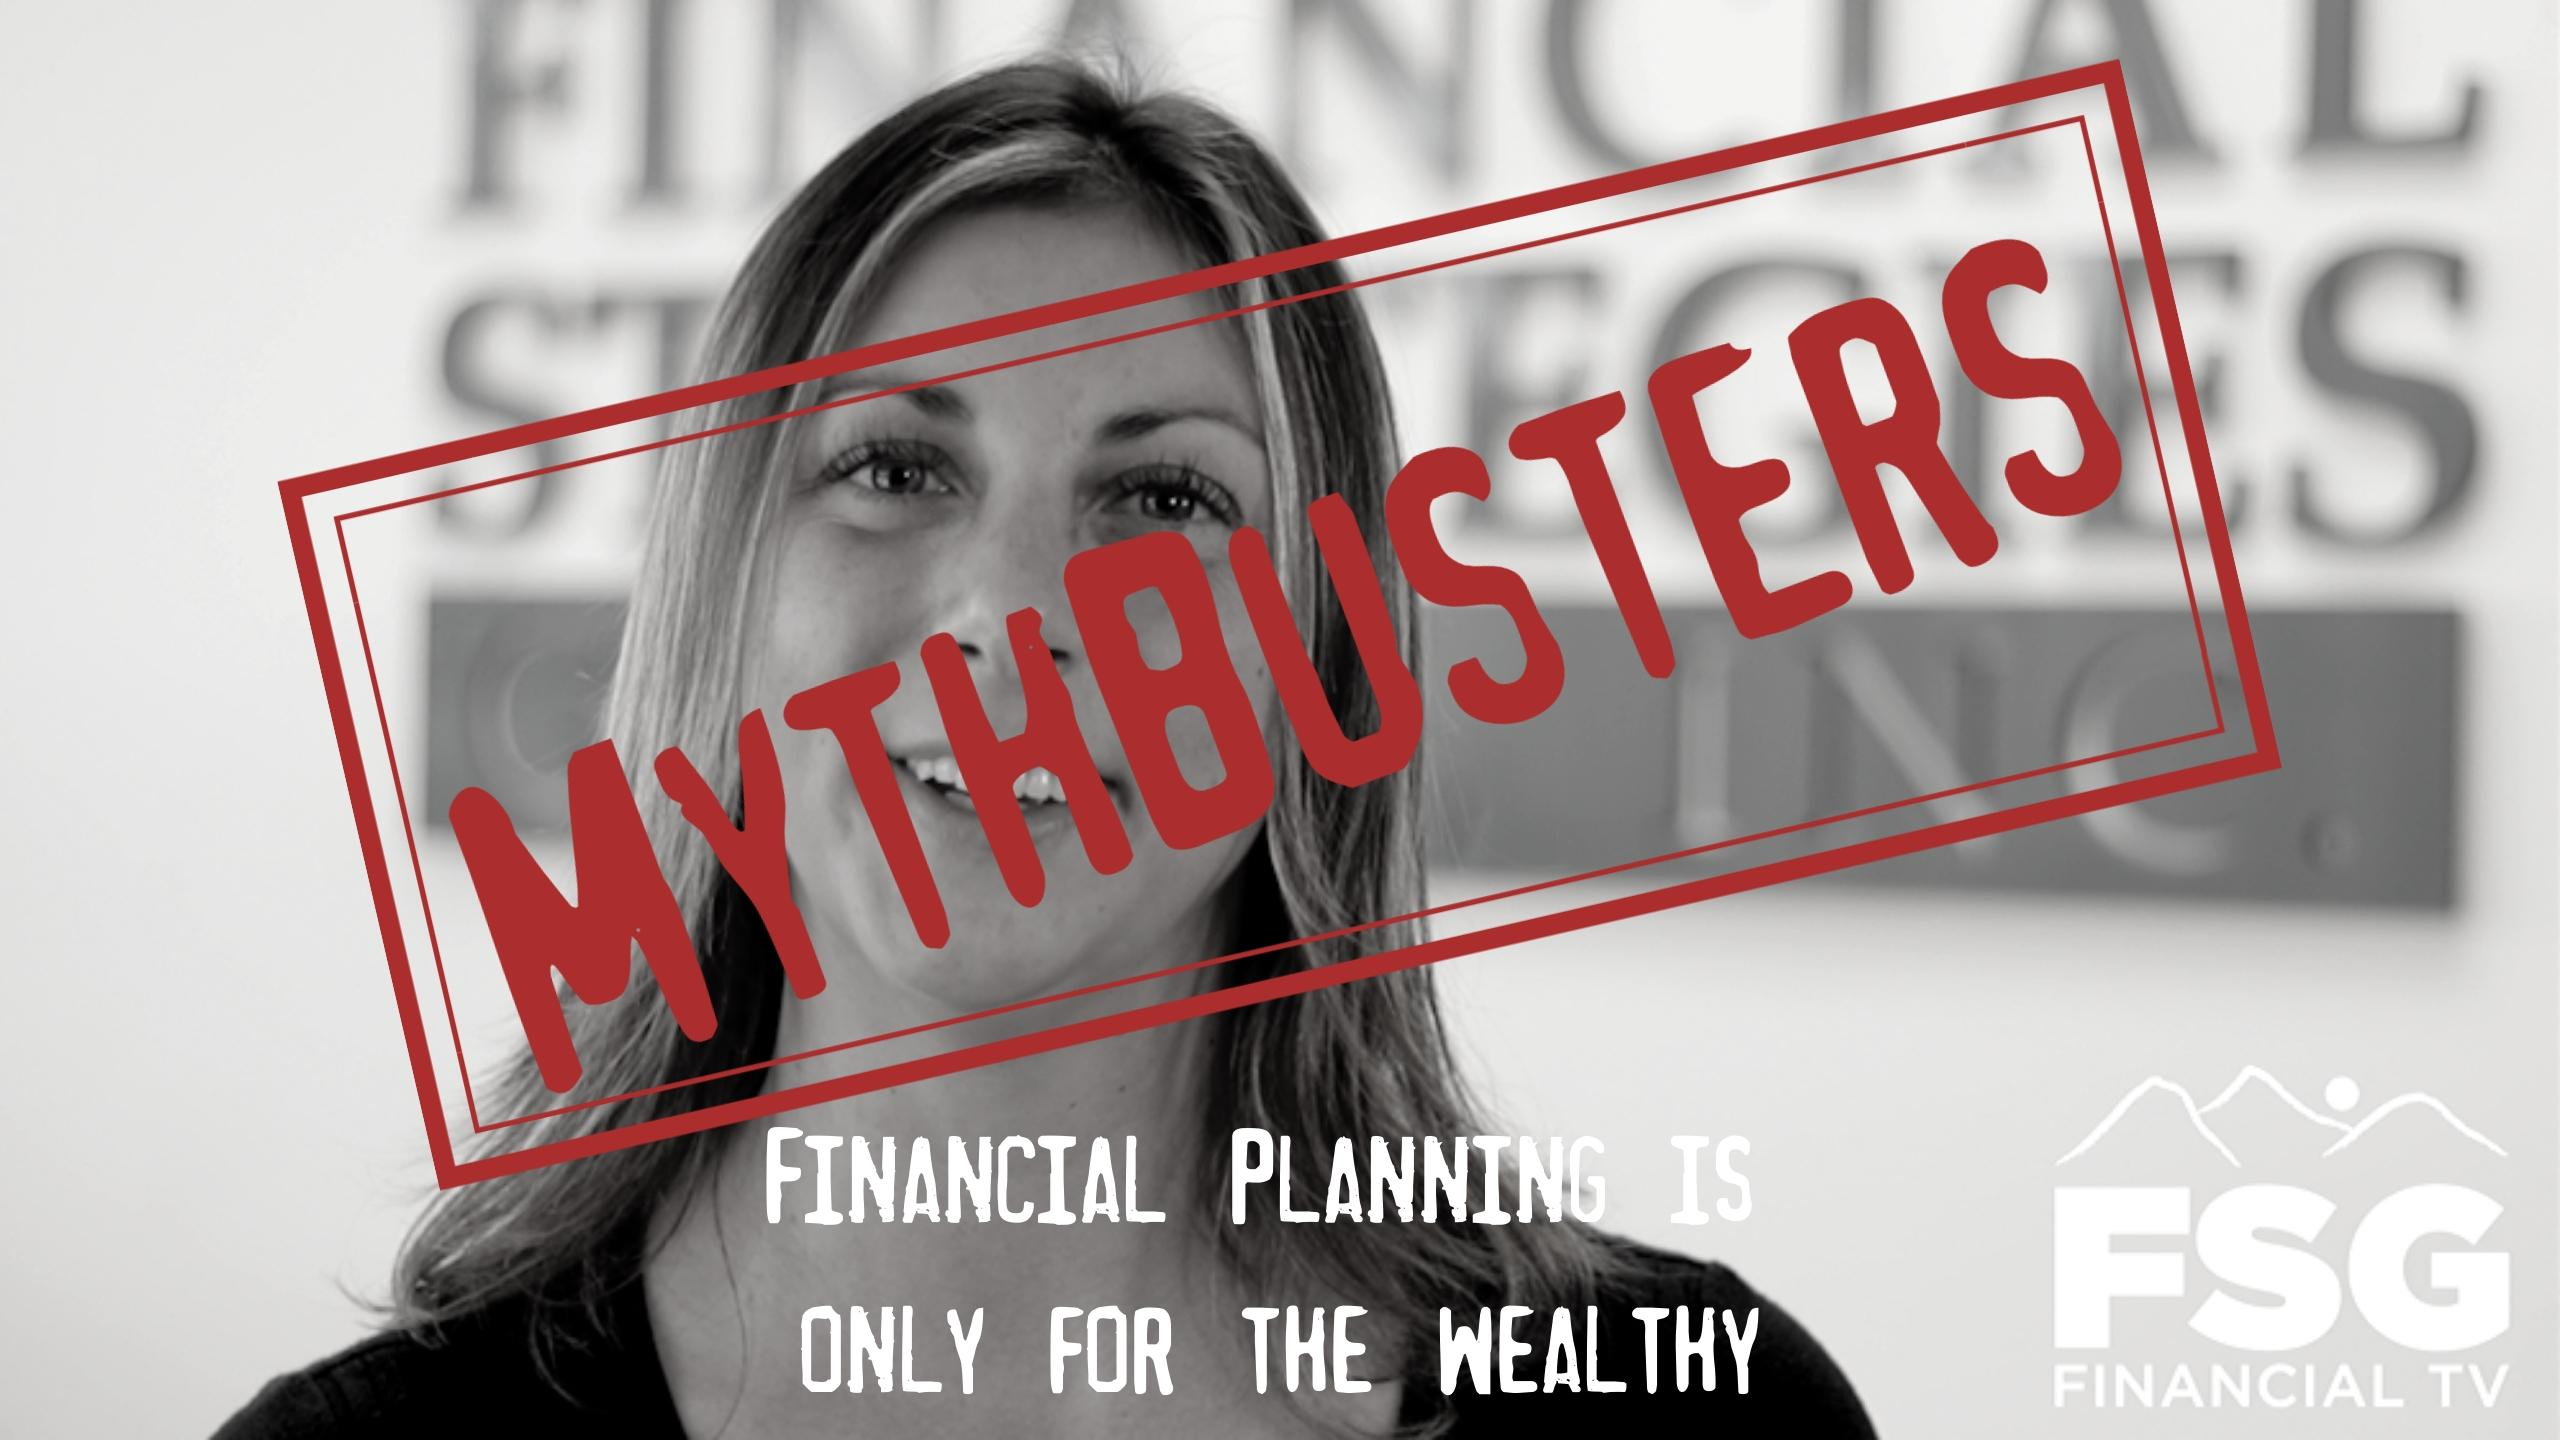 MythBusters: Financial Planning Is Only for the Wealthy Thumbnail